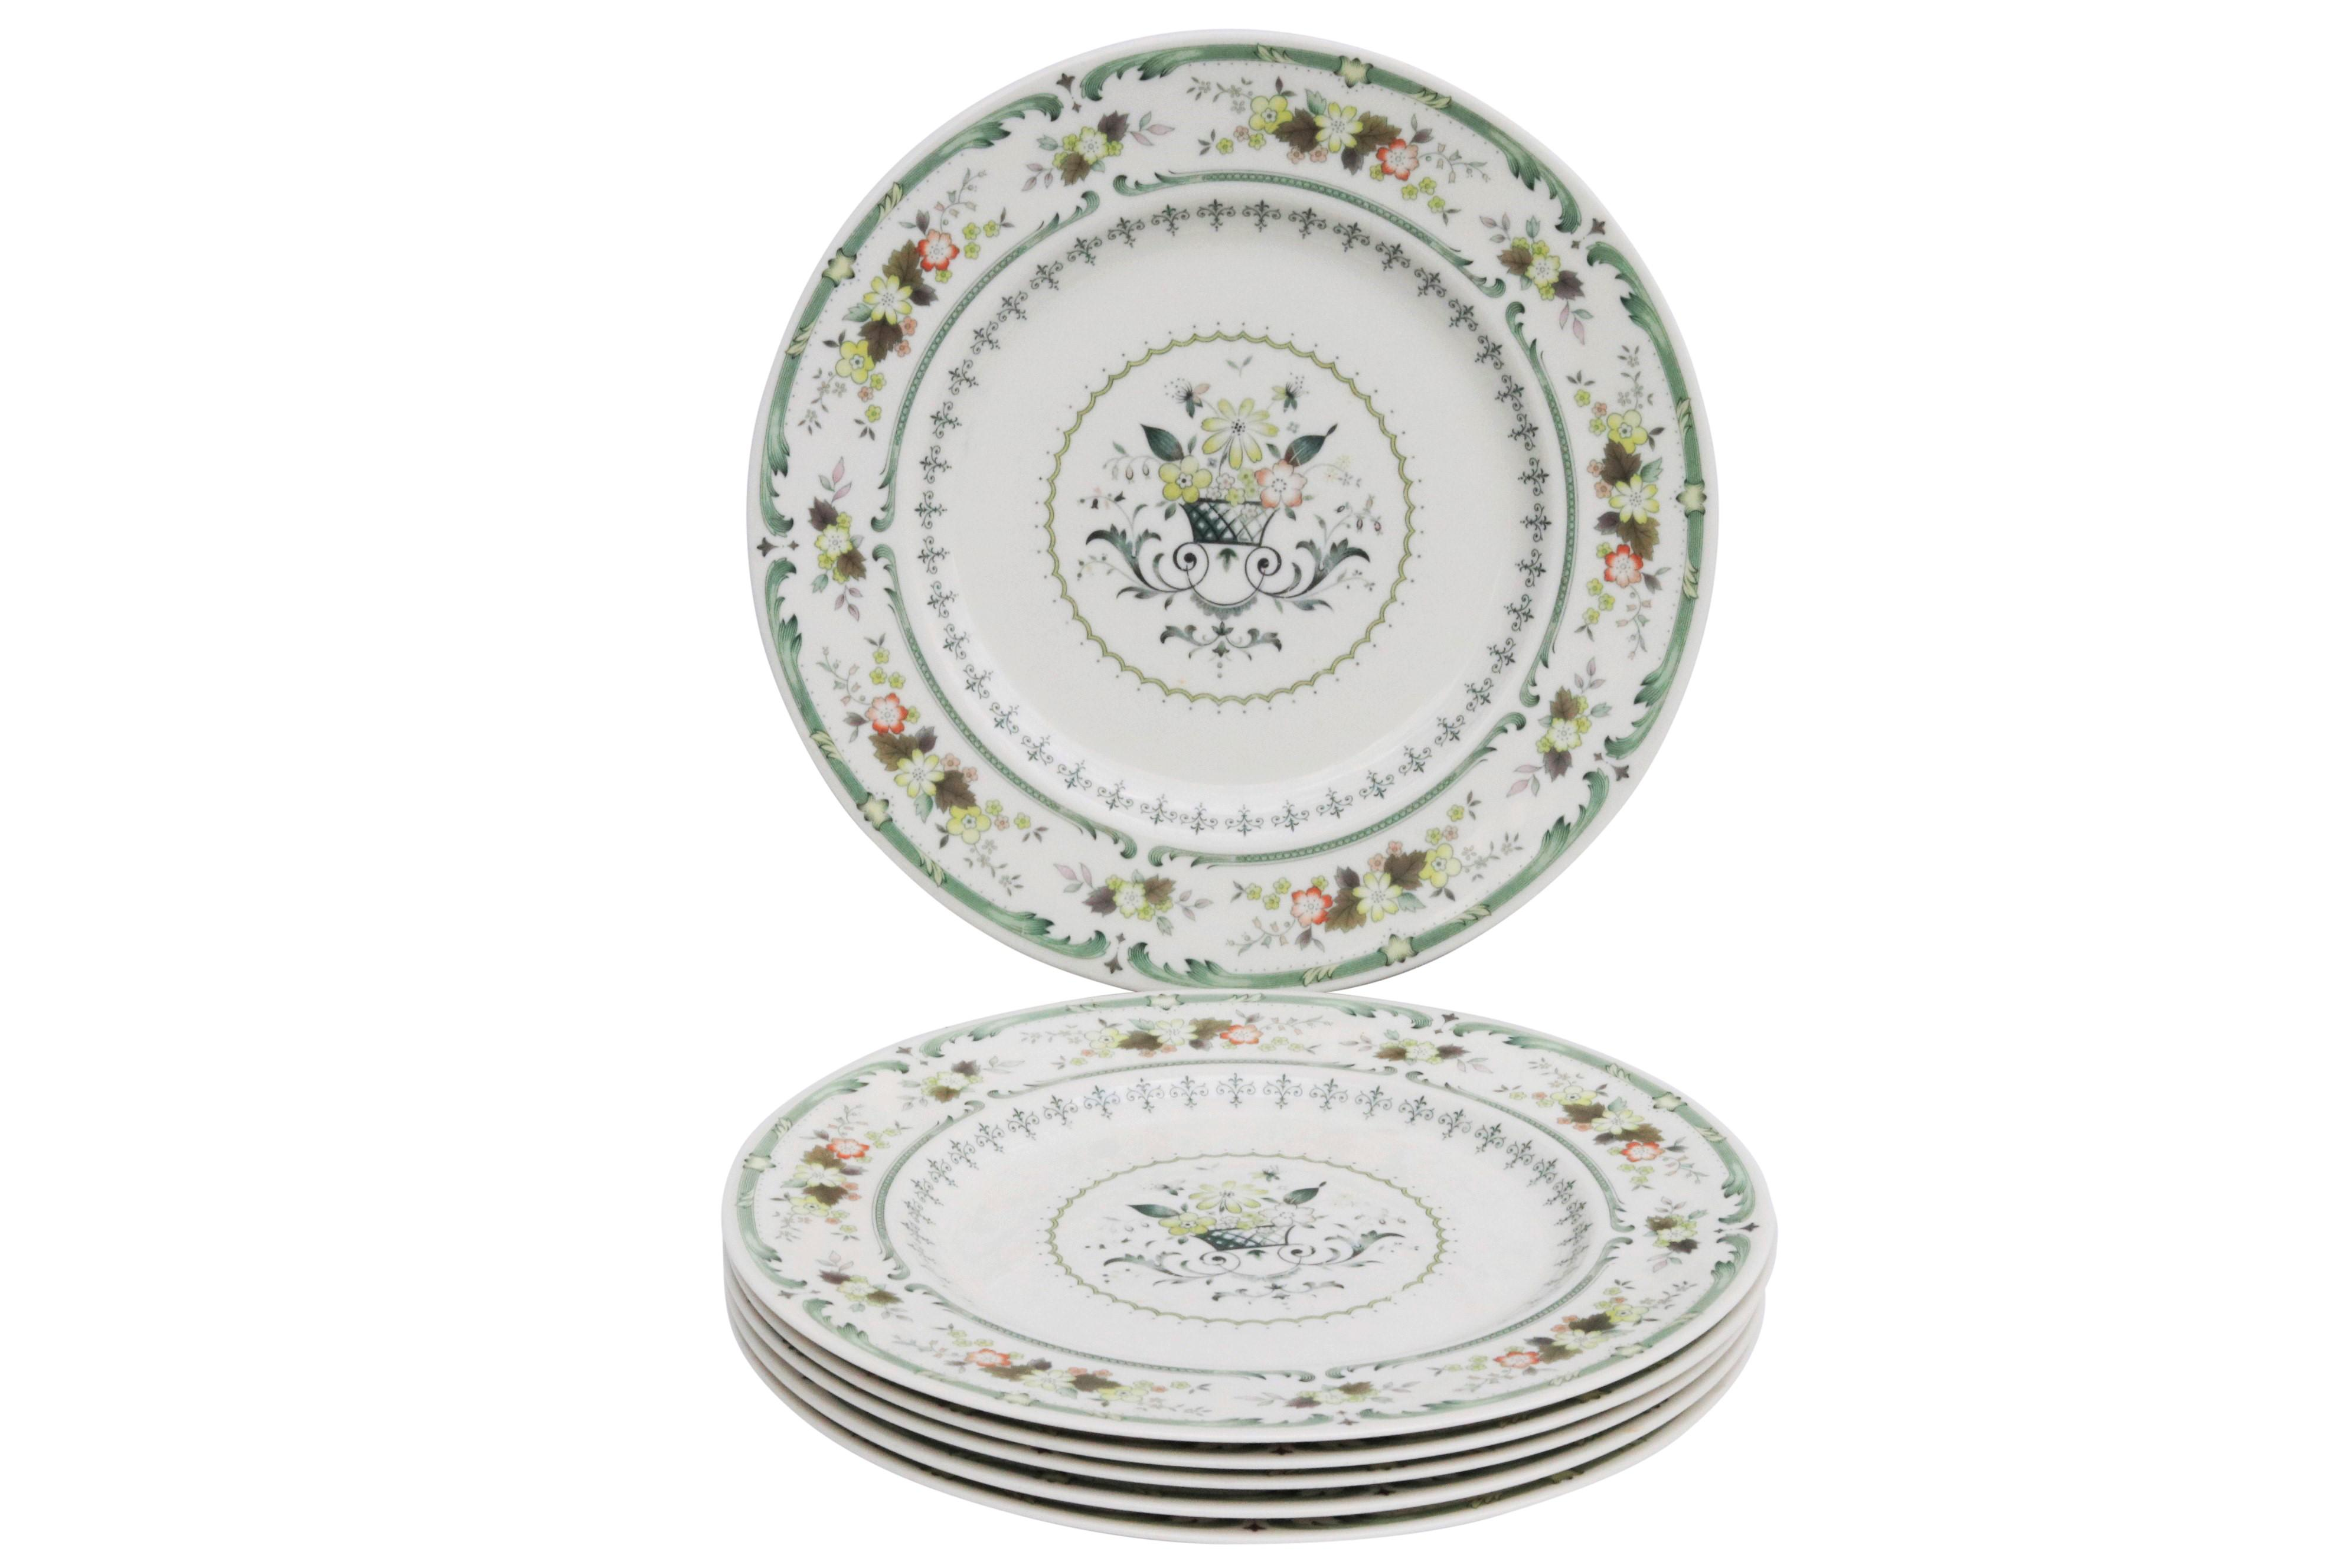 English Fine China Plates by Royal Doulton - Set of 6 - Image 7 of 7  sc 1 st  Chairish : fine china dinnerware sets - pezcame.com